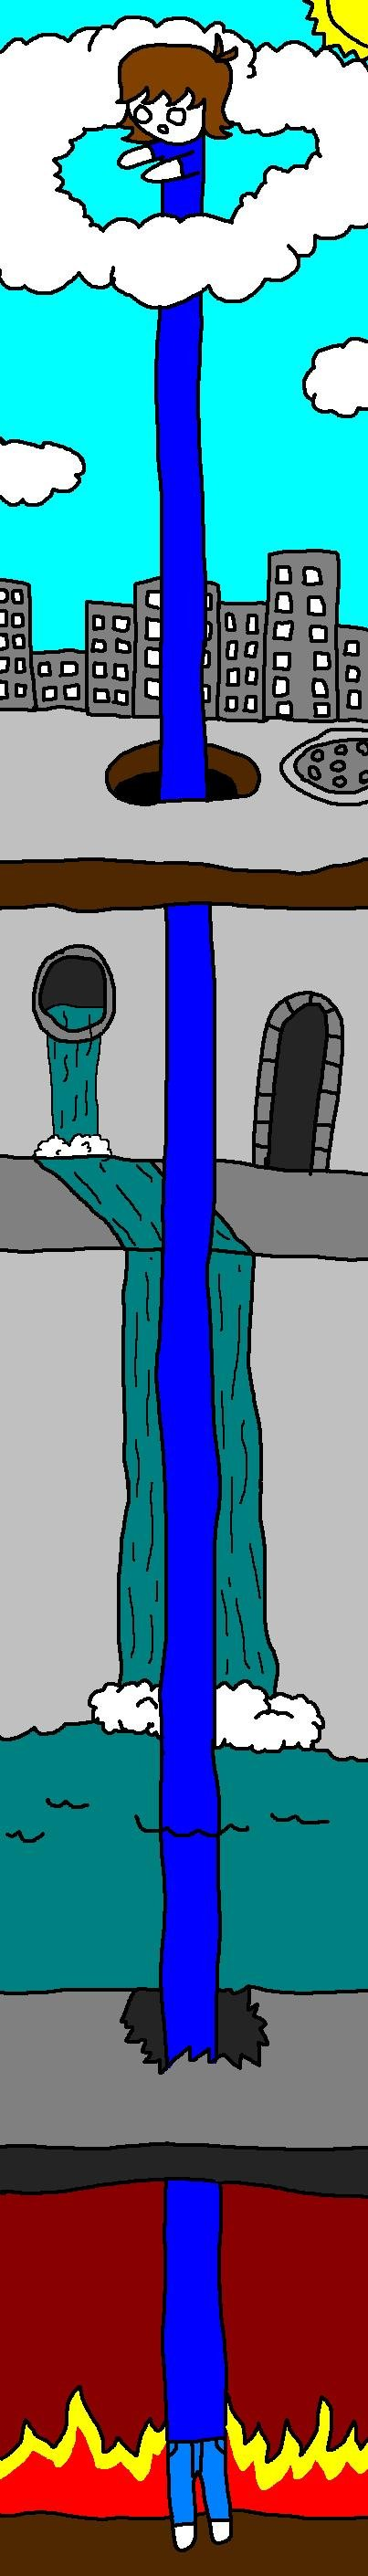 Long Evan is LOOOOOOOOOOONG!. This took a long time to make, but it was awesome because I did it with my new tablet! I thumb up EVERY COMMENT, so you should thu